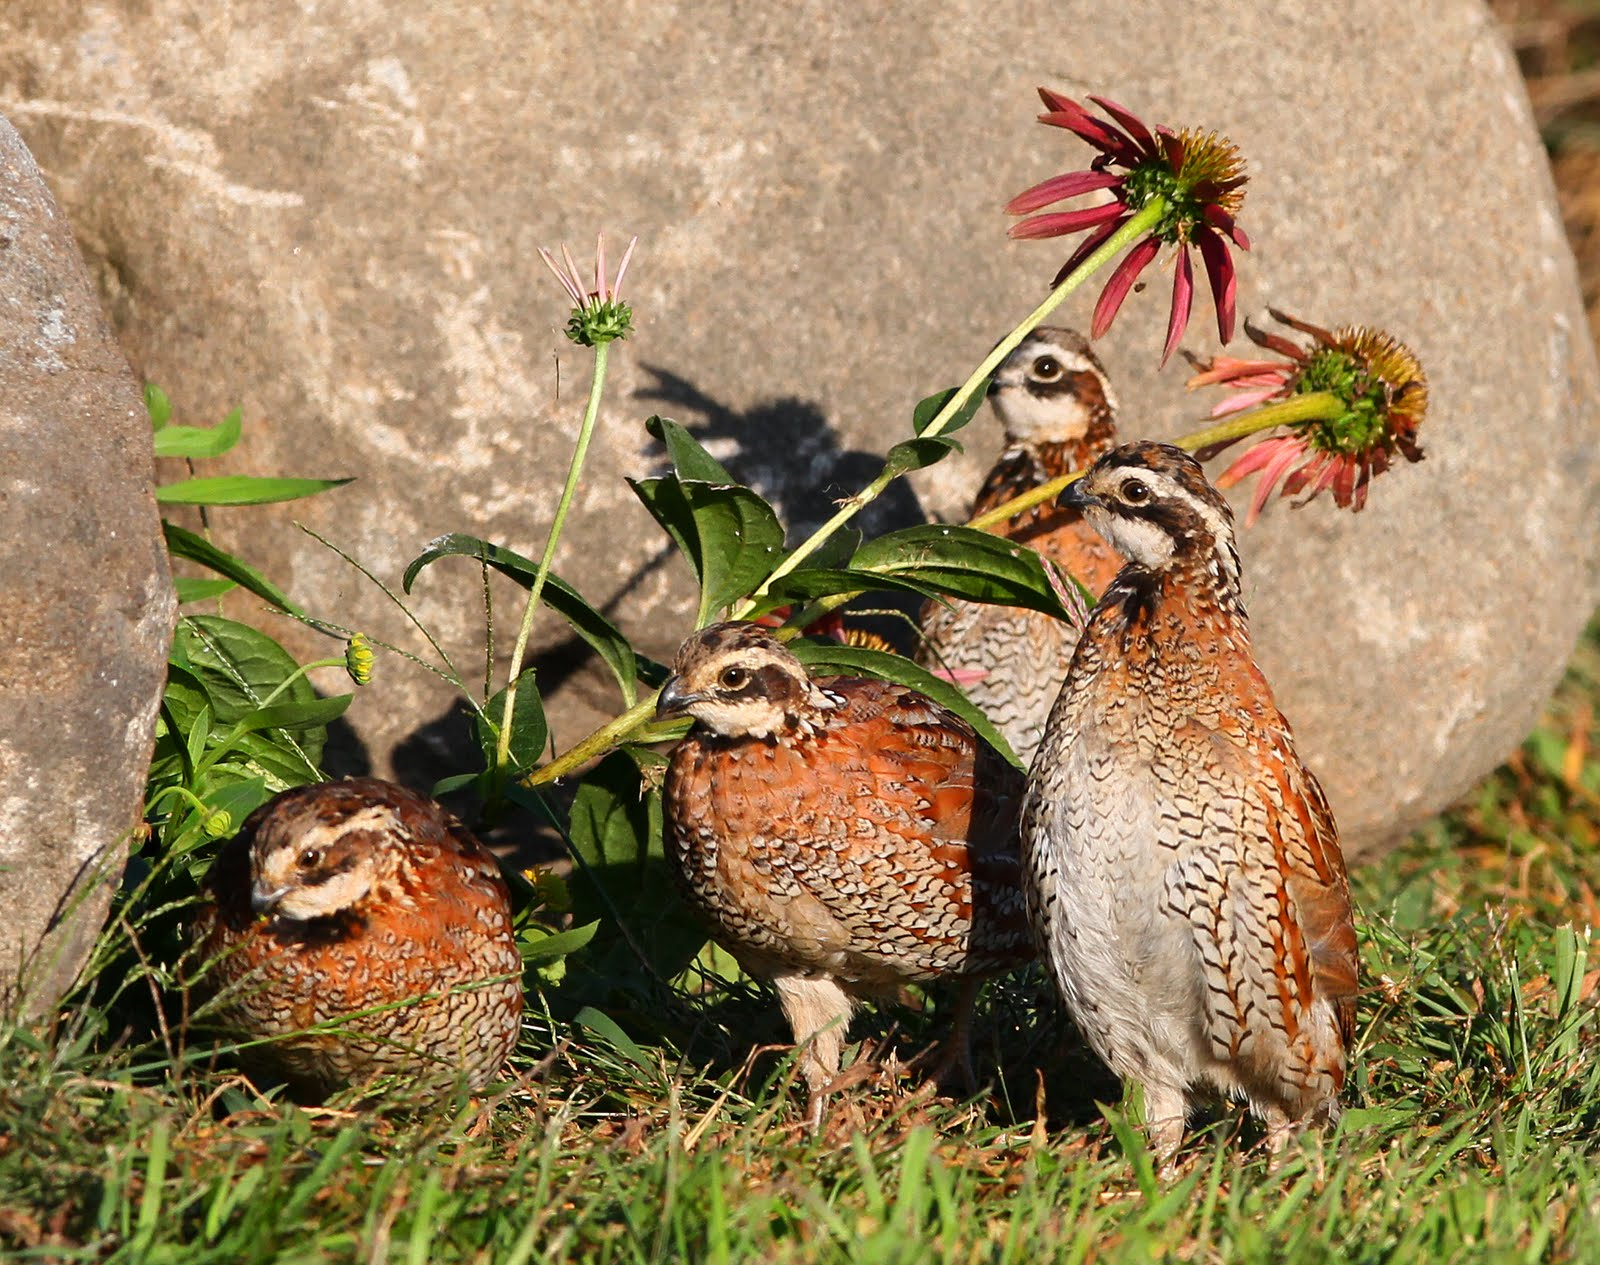 Bobwhite quail covey - photo#26